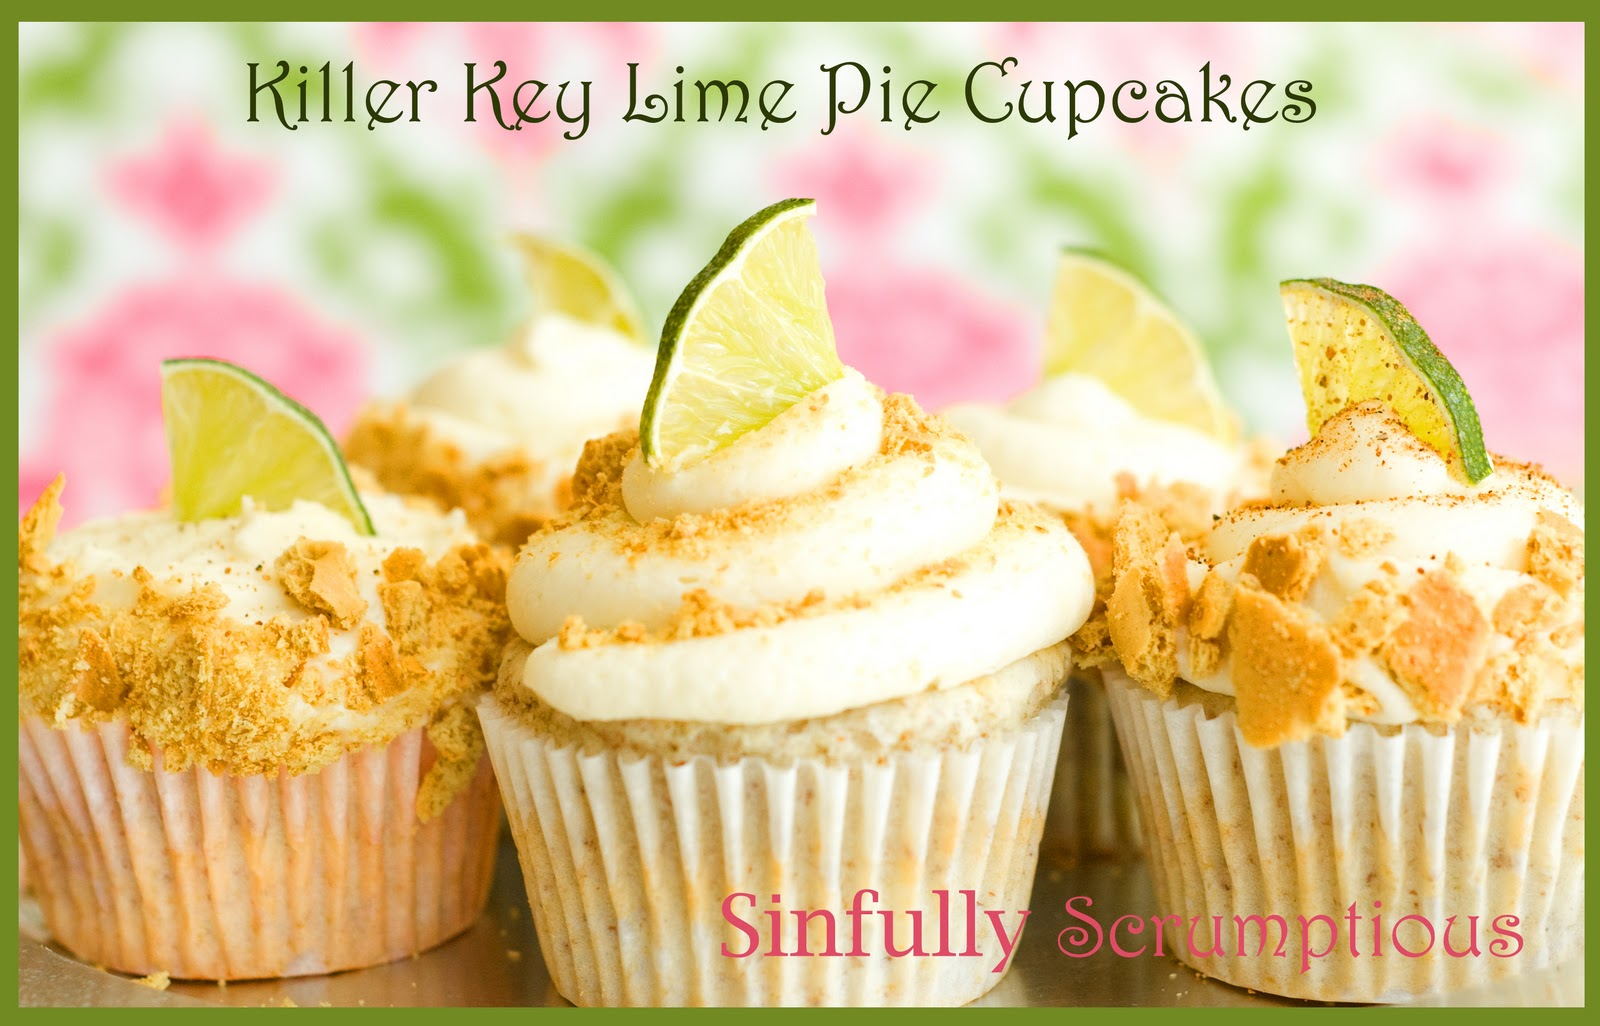 Sinfully Scrumptious: Scrumptious Key Lime Cupcakes in Littleton